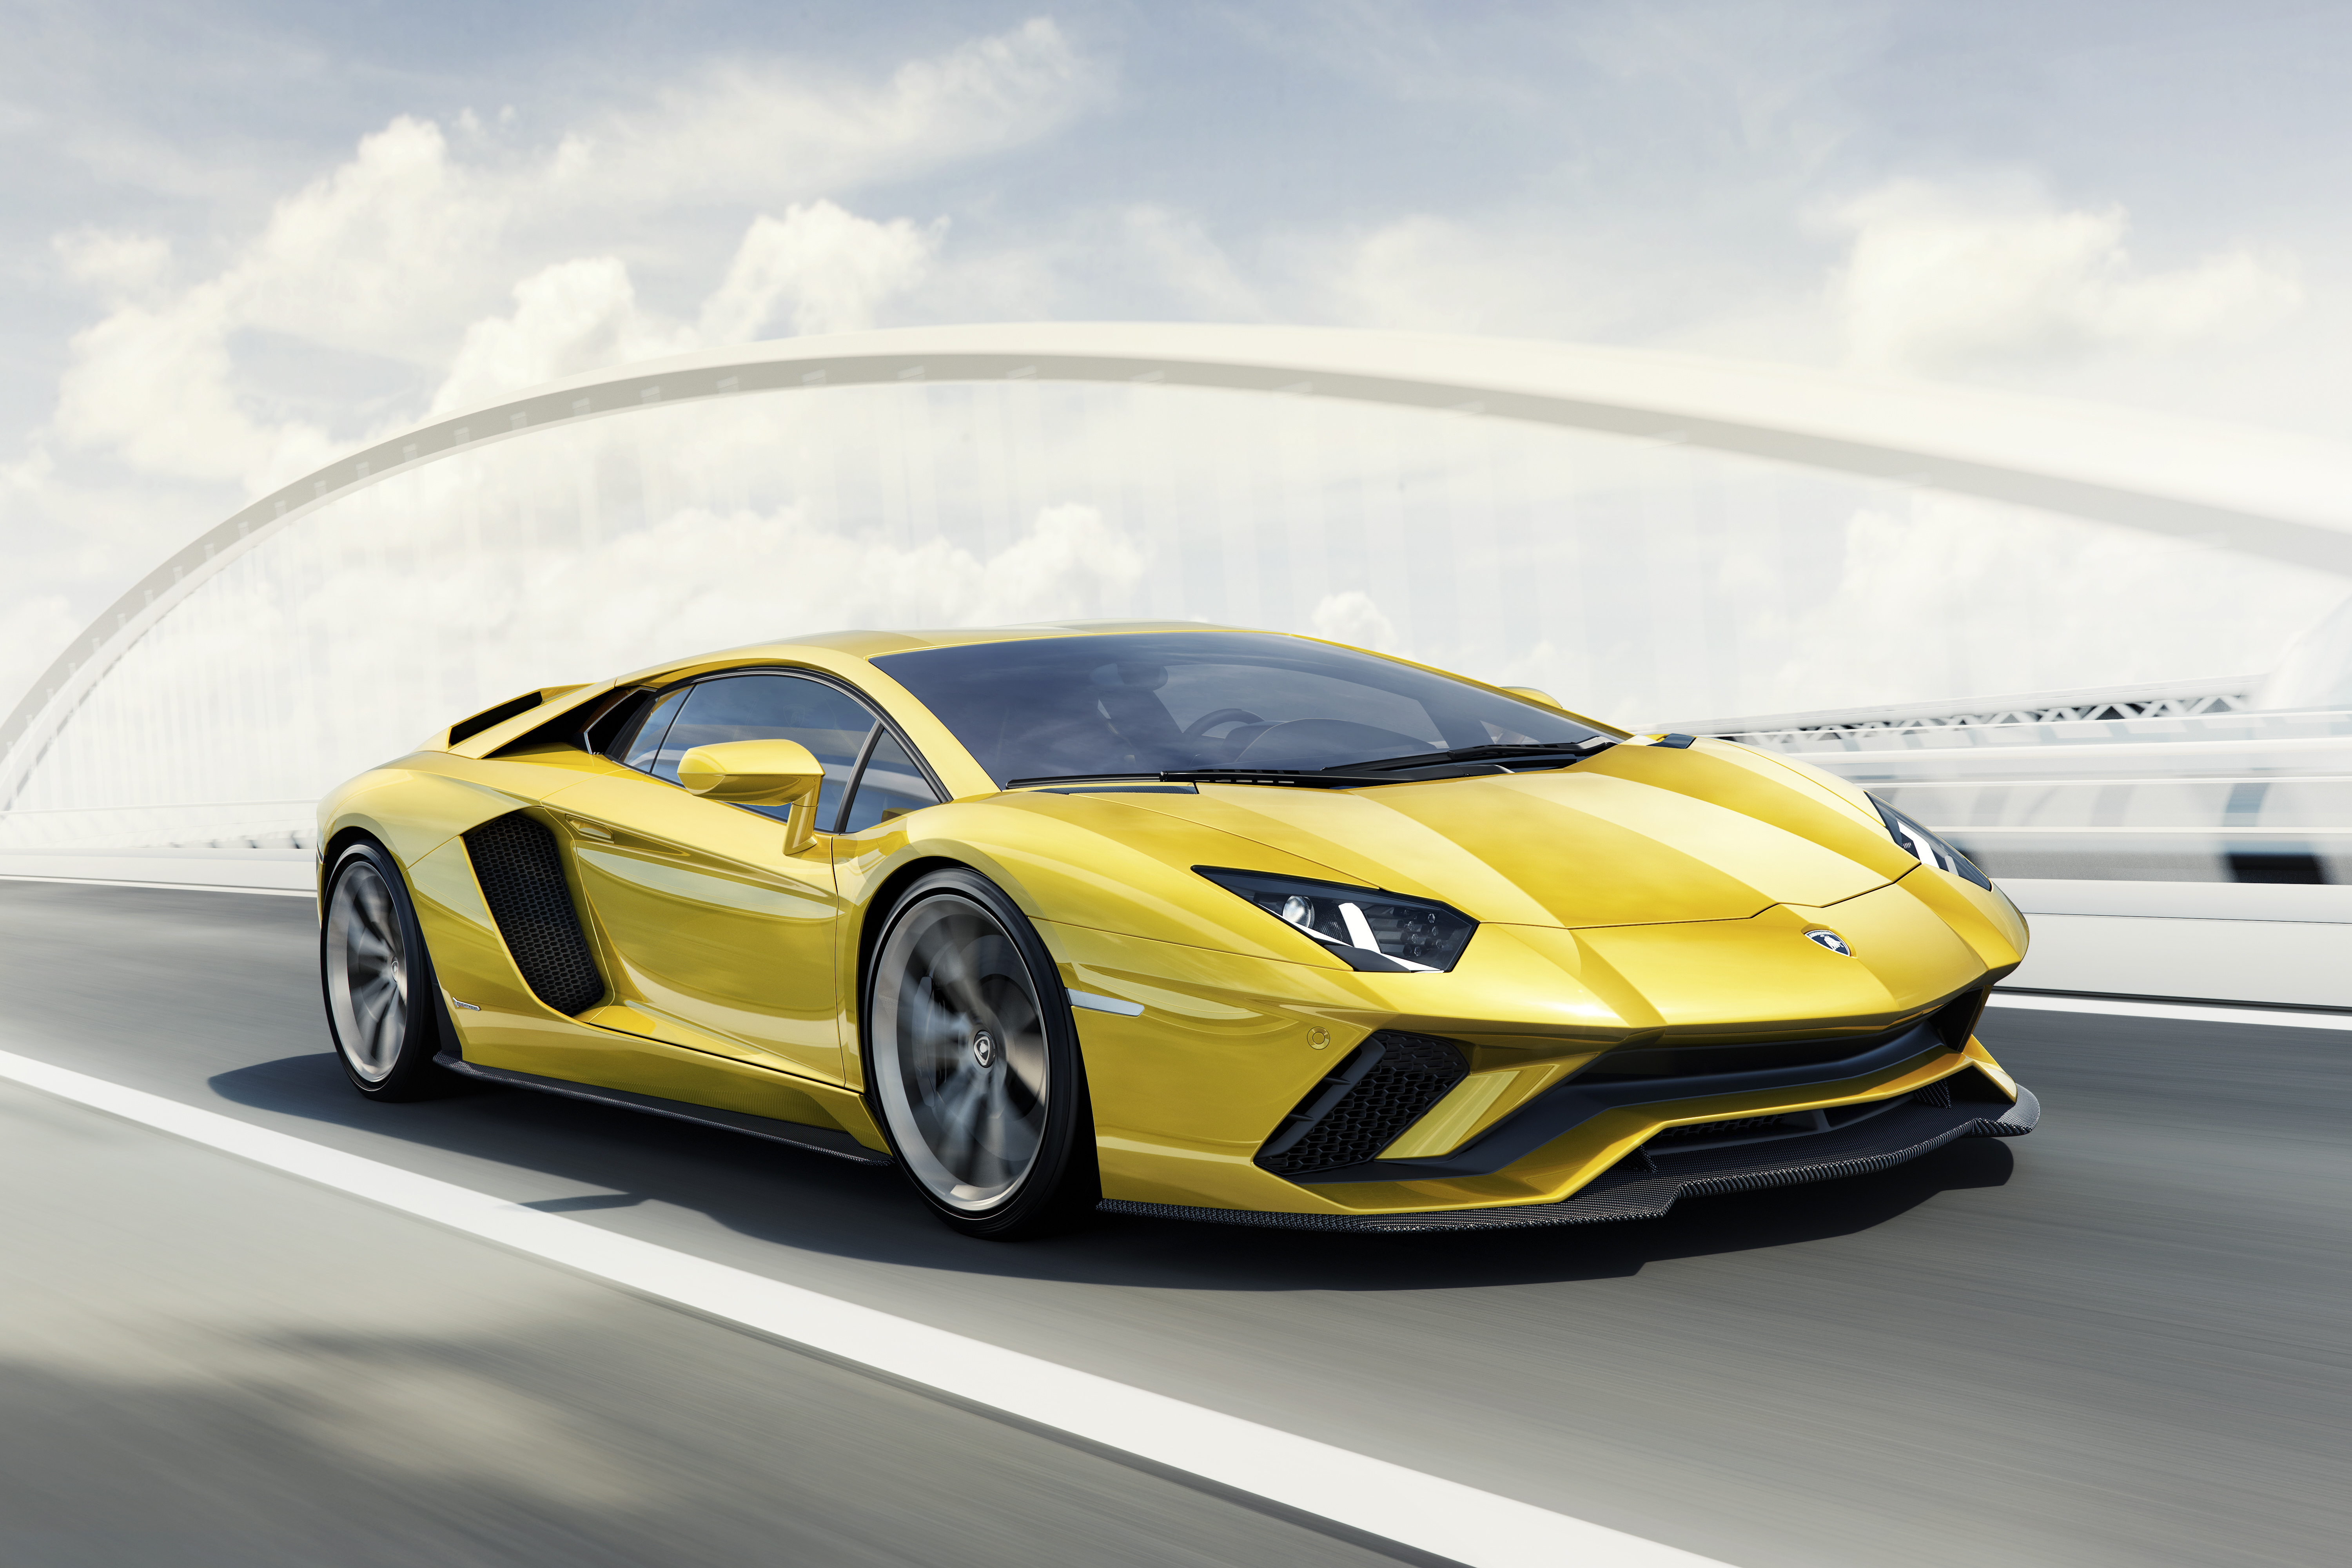 aventador raging new mirror poster lamborghini in a shattering s and numbers about big as miura is rearview iconic now coupe produces the all records stellar bull